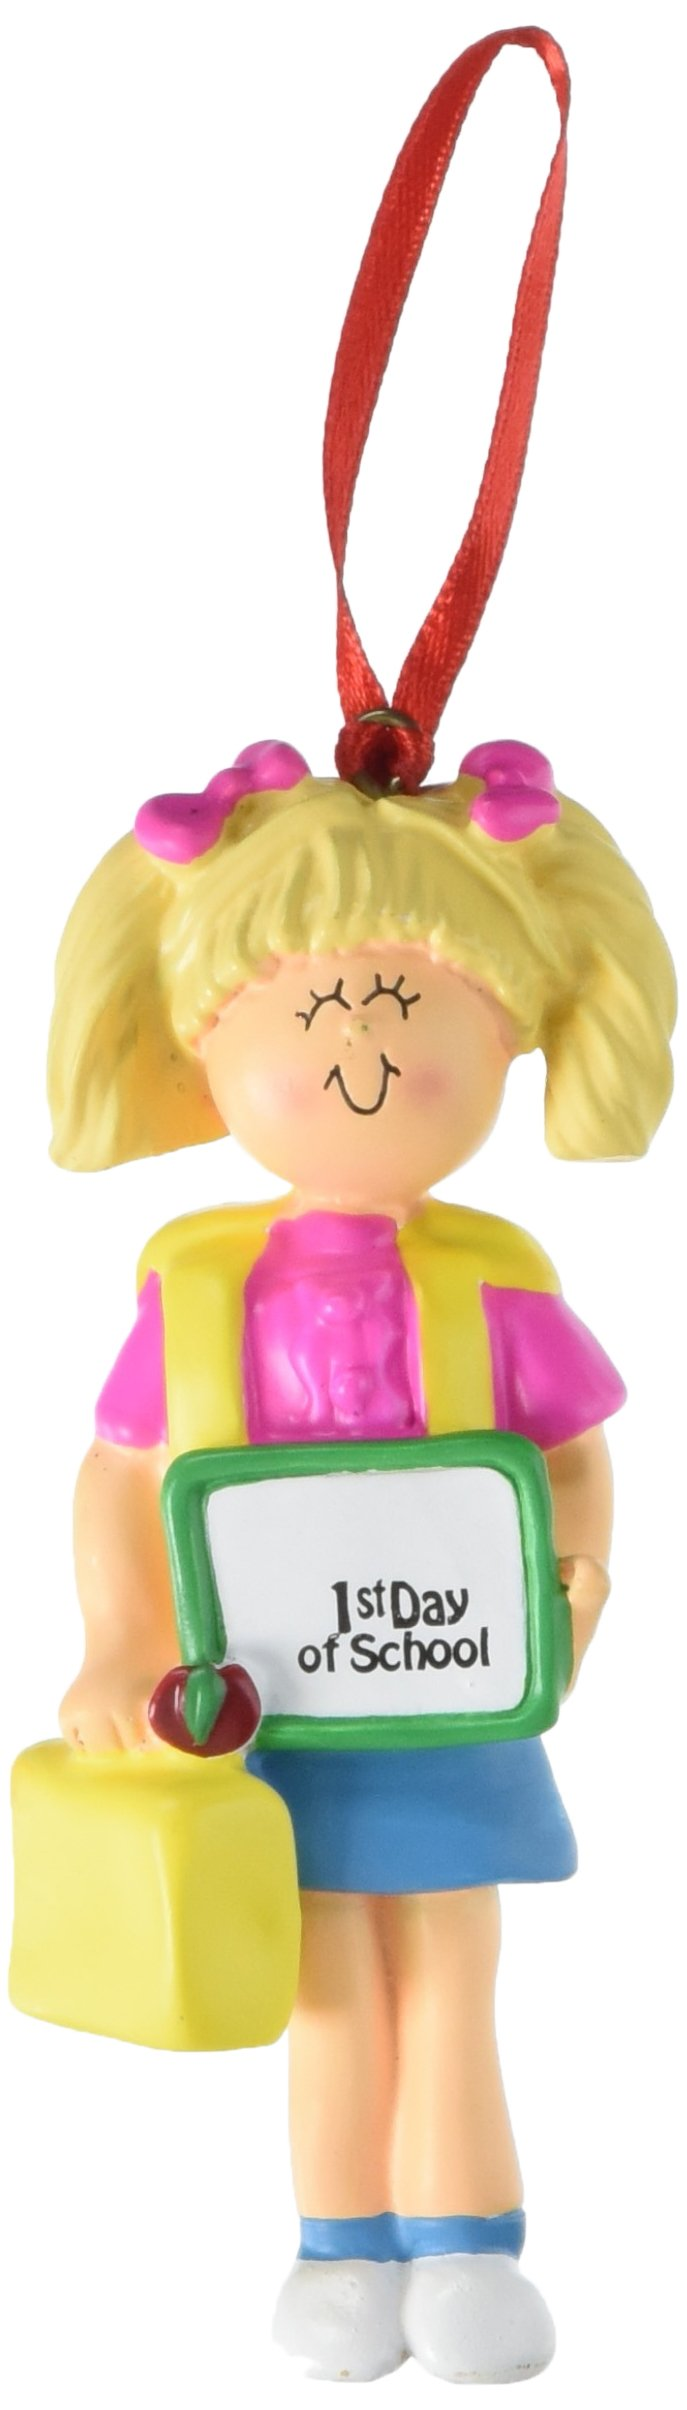 Ornament Central OC-167-FBL Female Blonde First Day of School Figurine